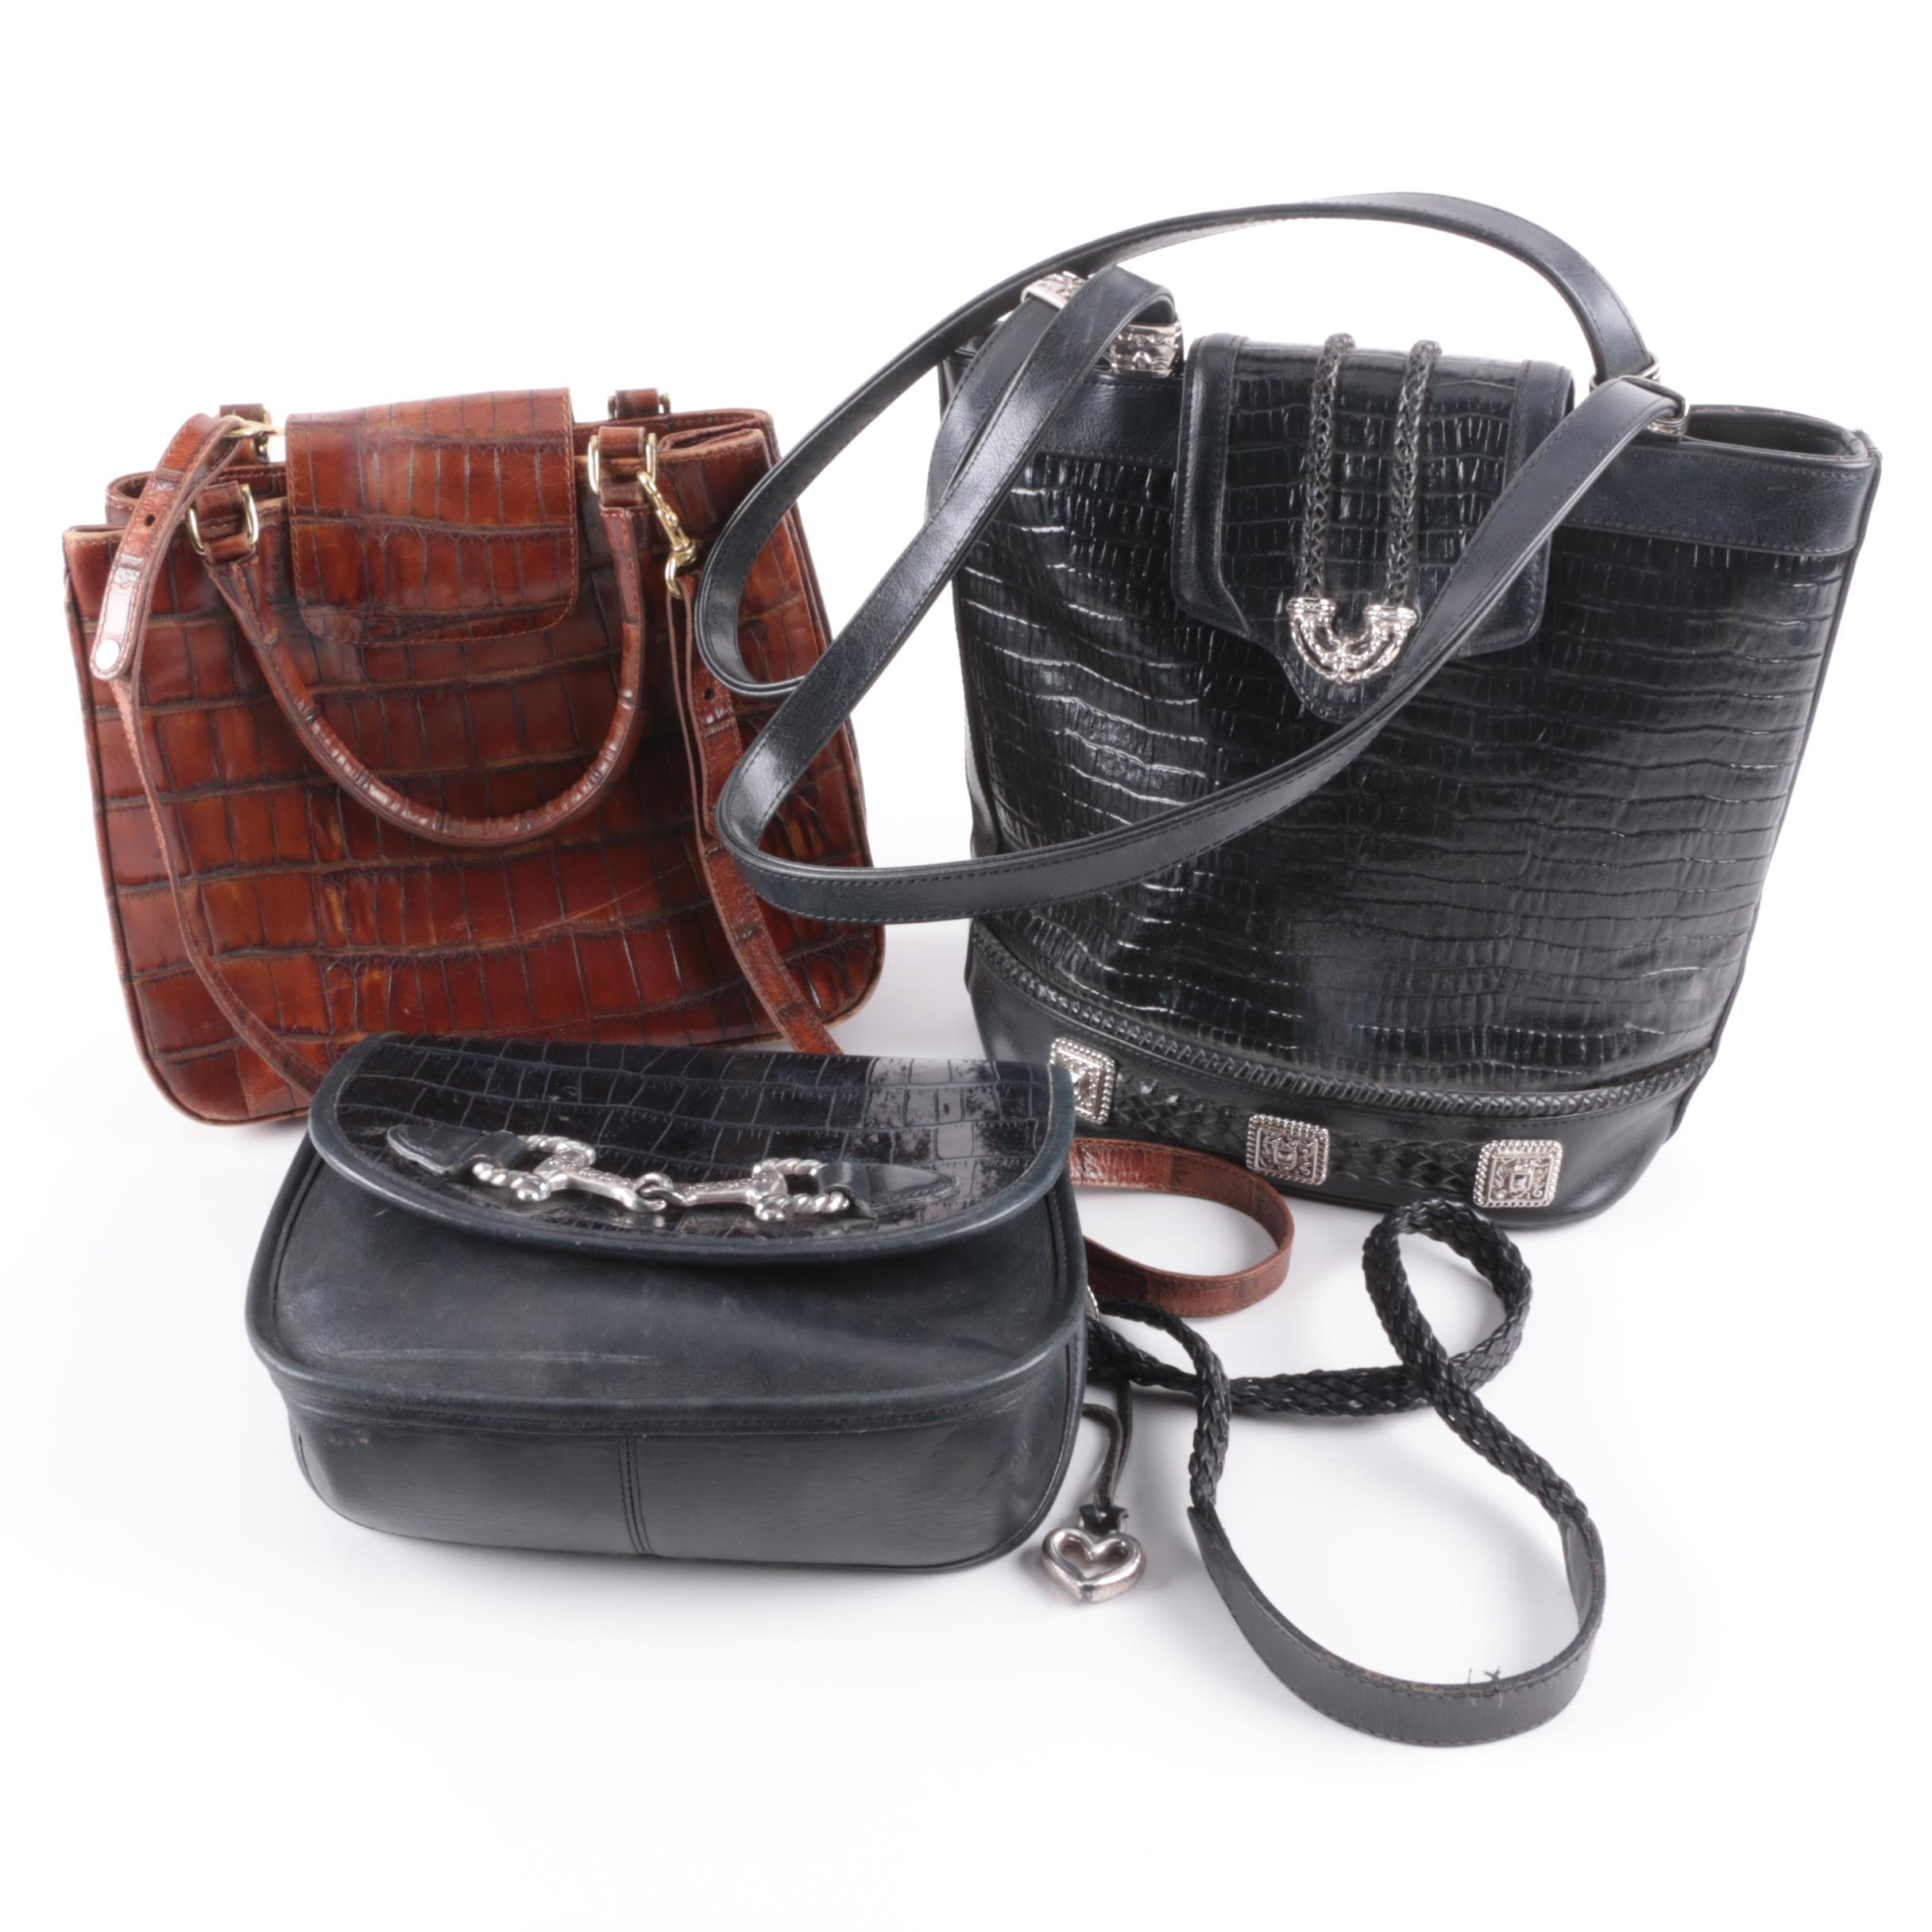 Reptile Embossed Leather Handbags Including Brahmin and Brighton